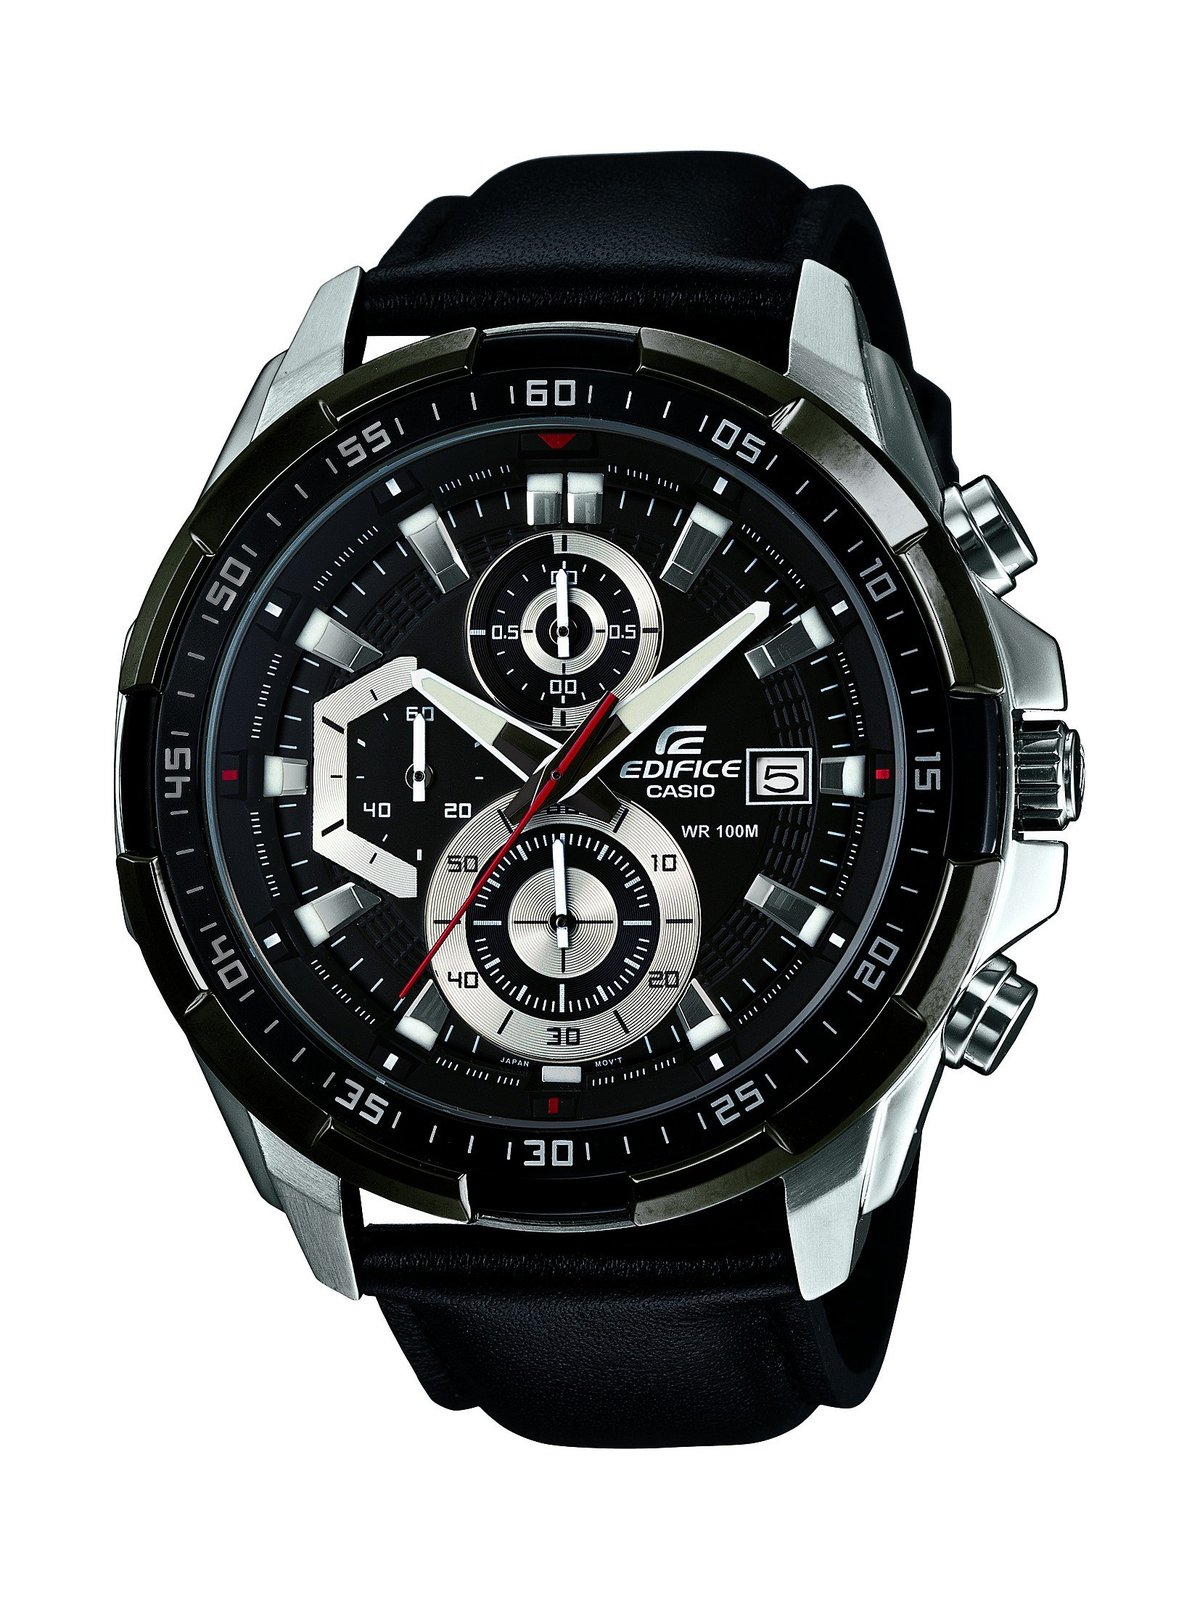 Casio Edifice Wristwatch  1 customer review and 60 listings a99a931fc6cc